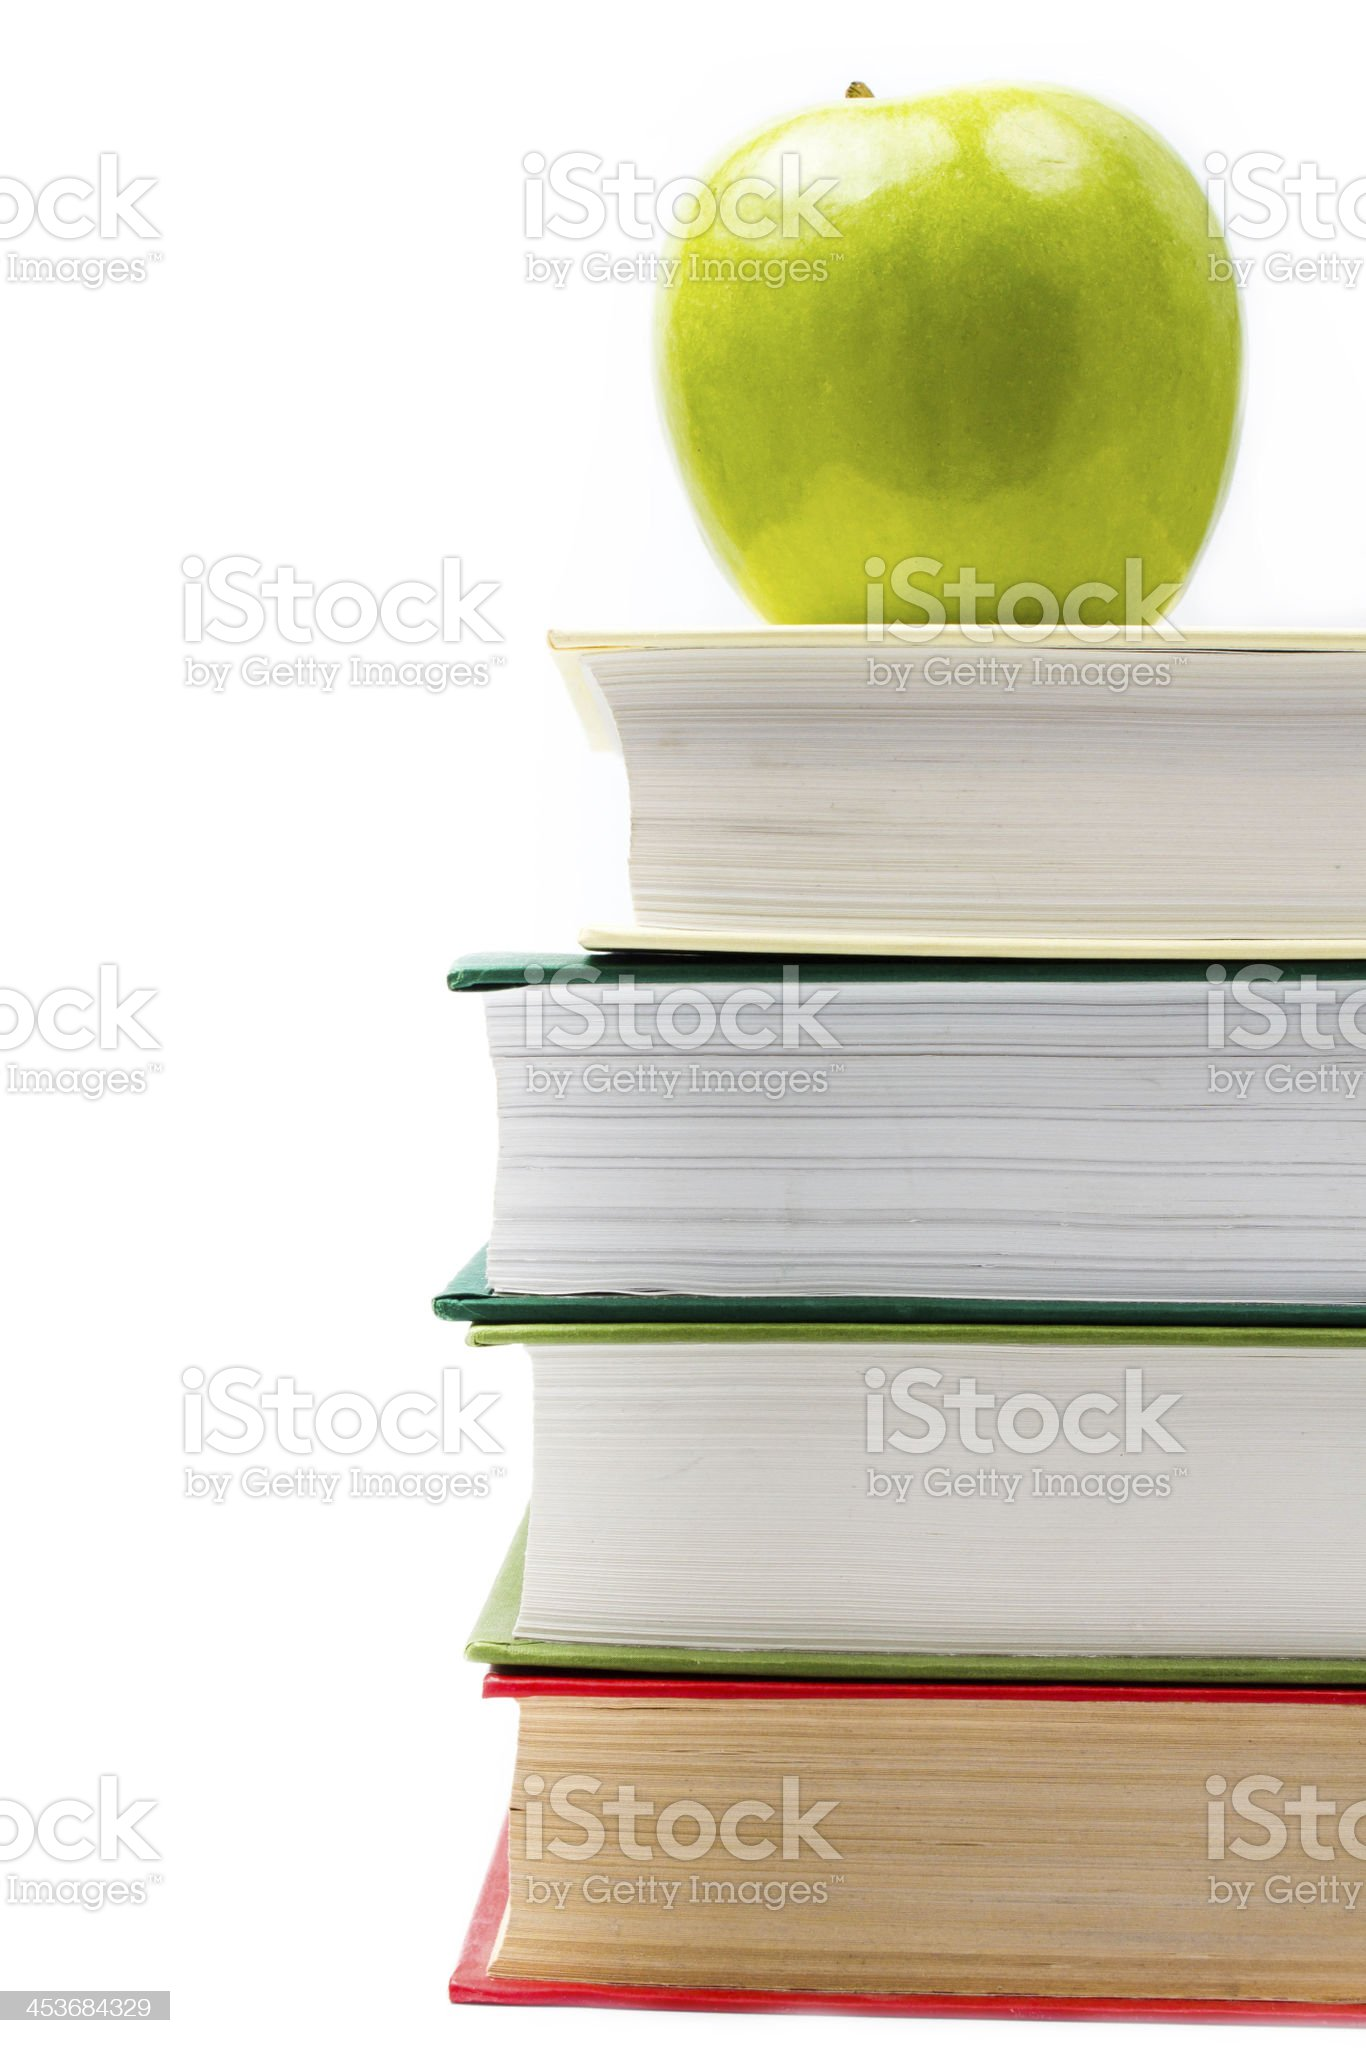 School supplies in classroom with books and apple royalty-free stock photo